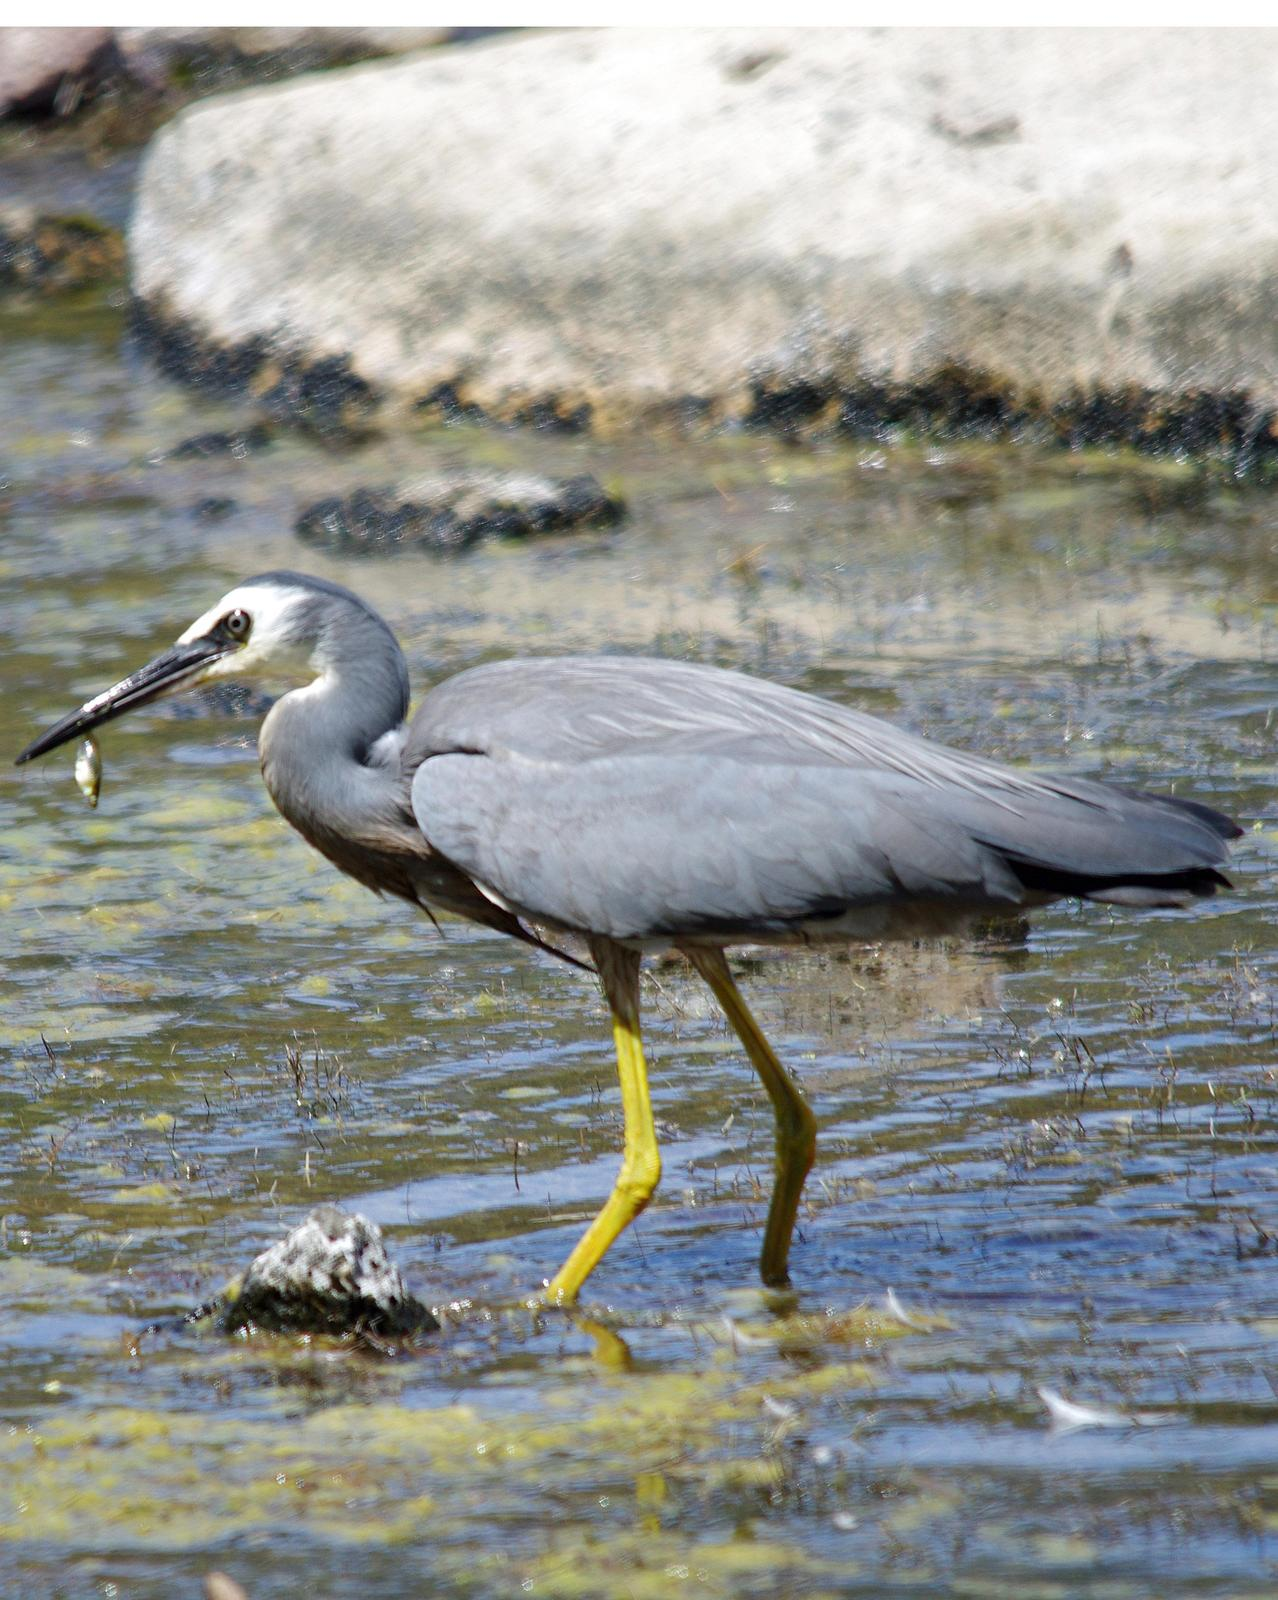 White-faced Heron Photo by Richard Lund